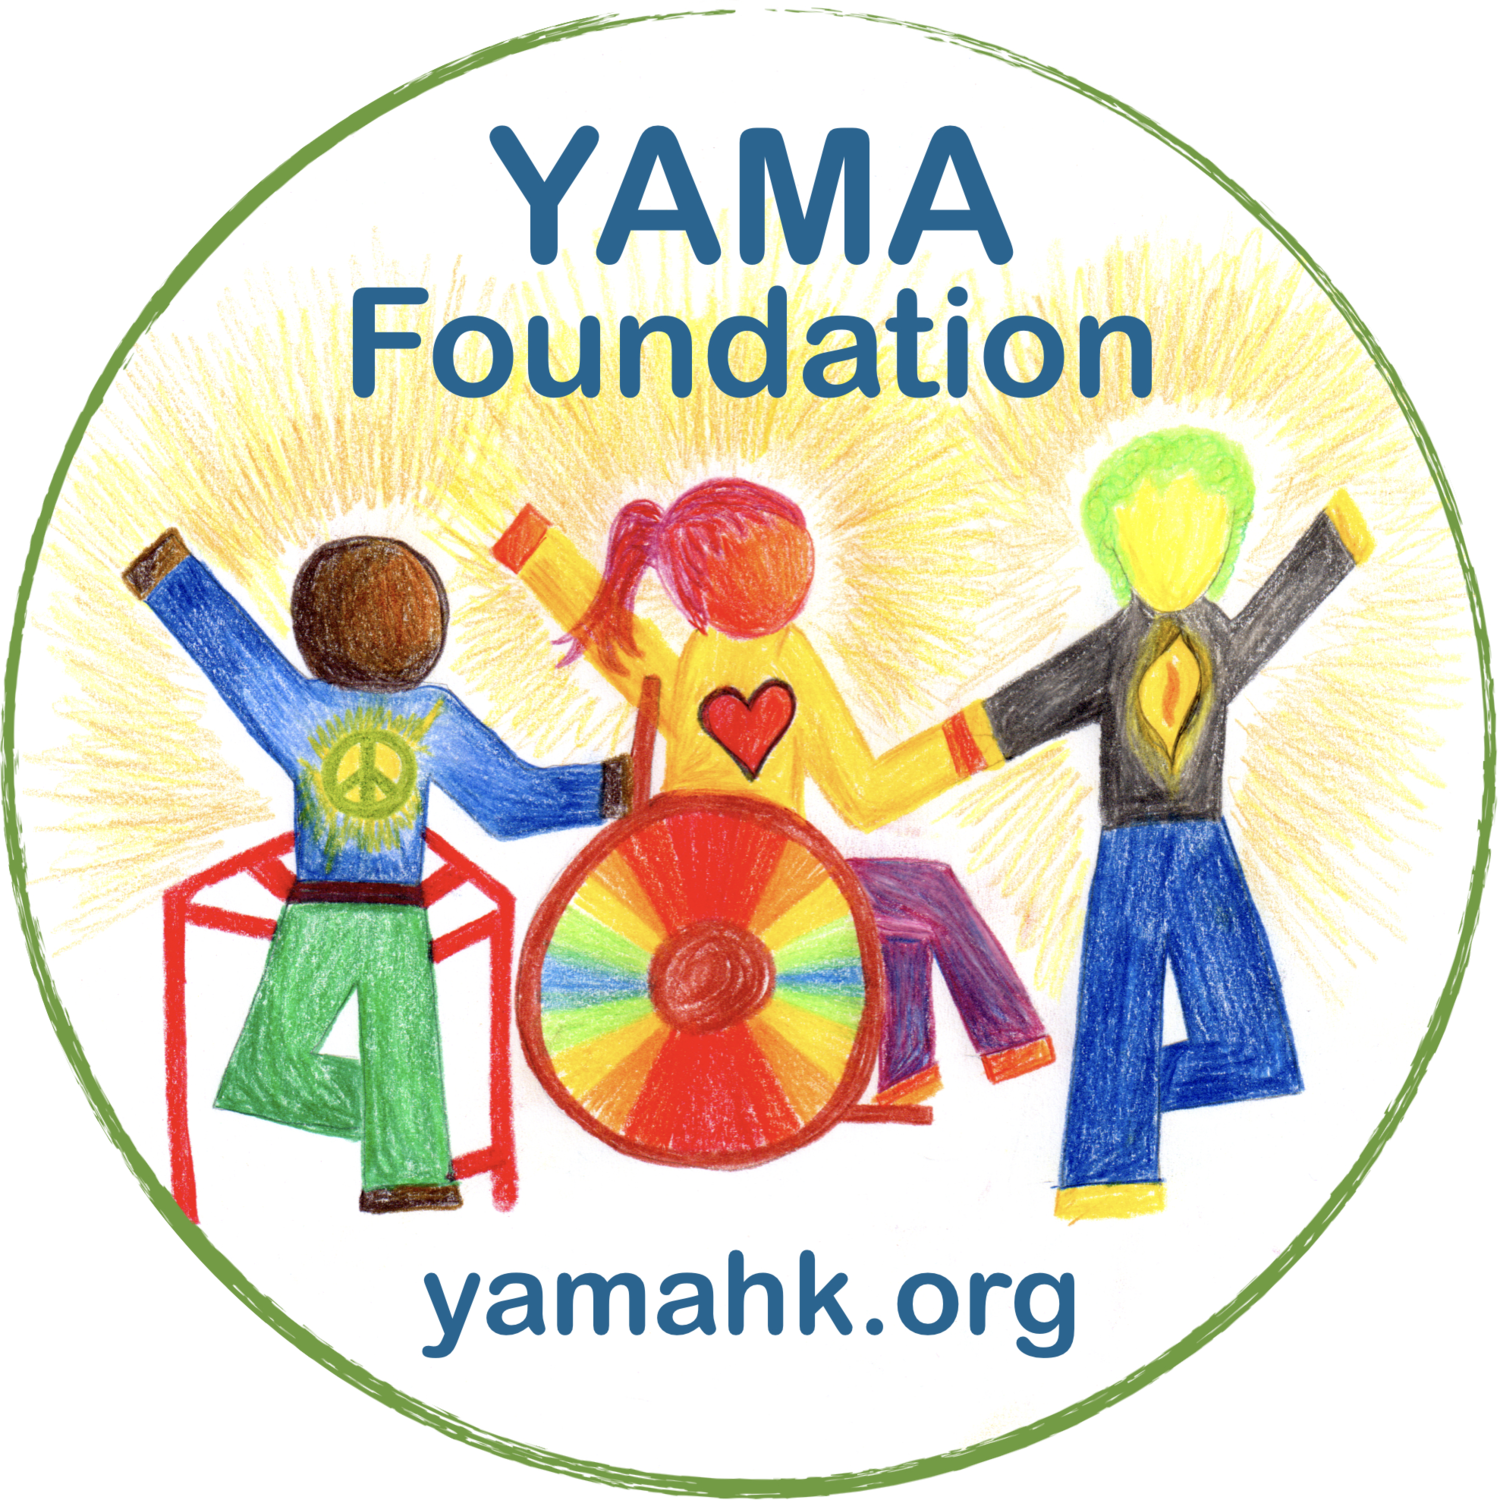 YAMA Foundation - Non-profit yoga classes accessible to everyone